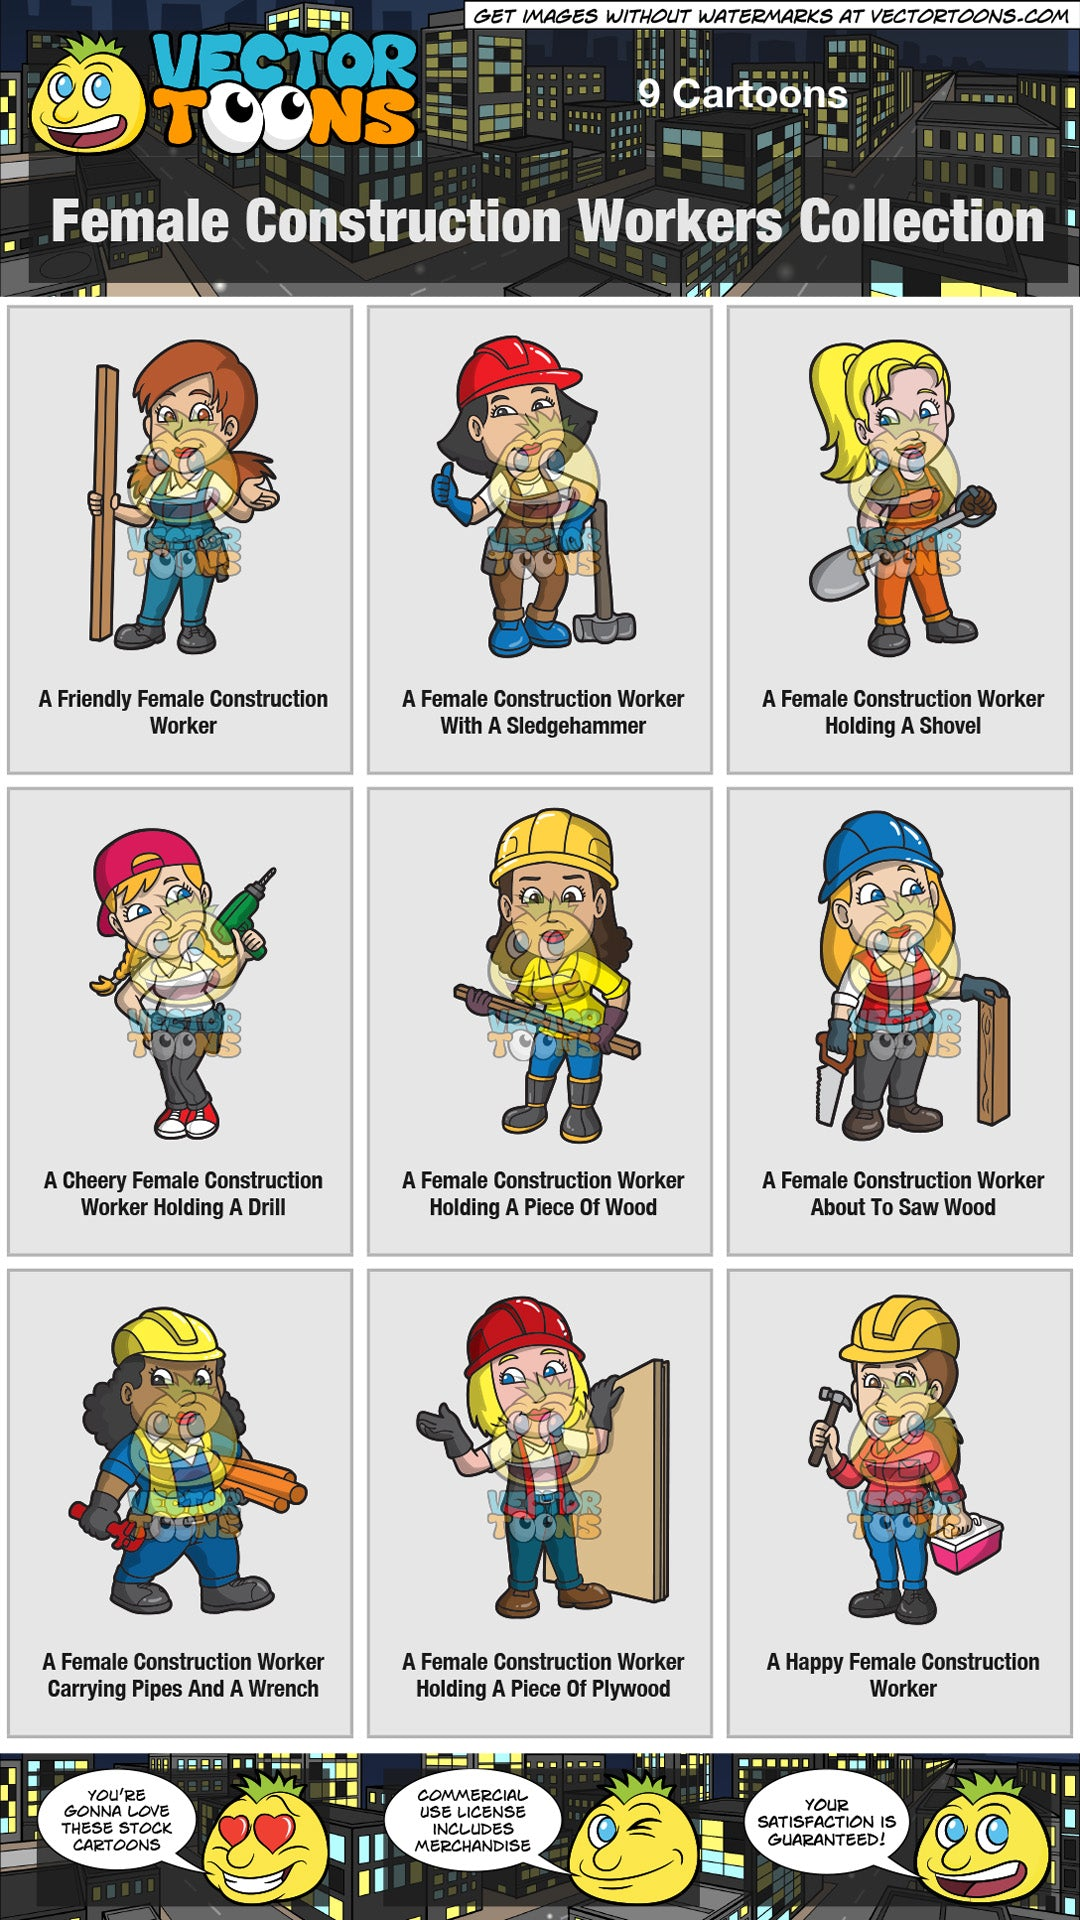 Female Construction Workers Collection